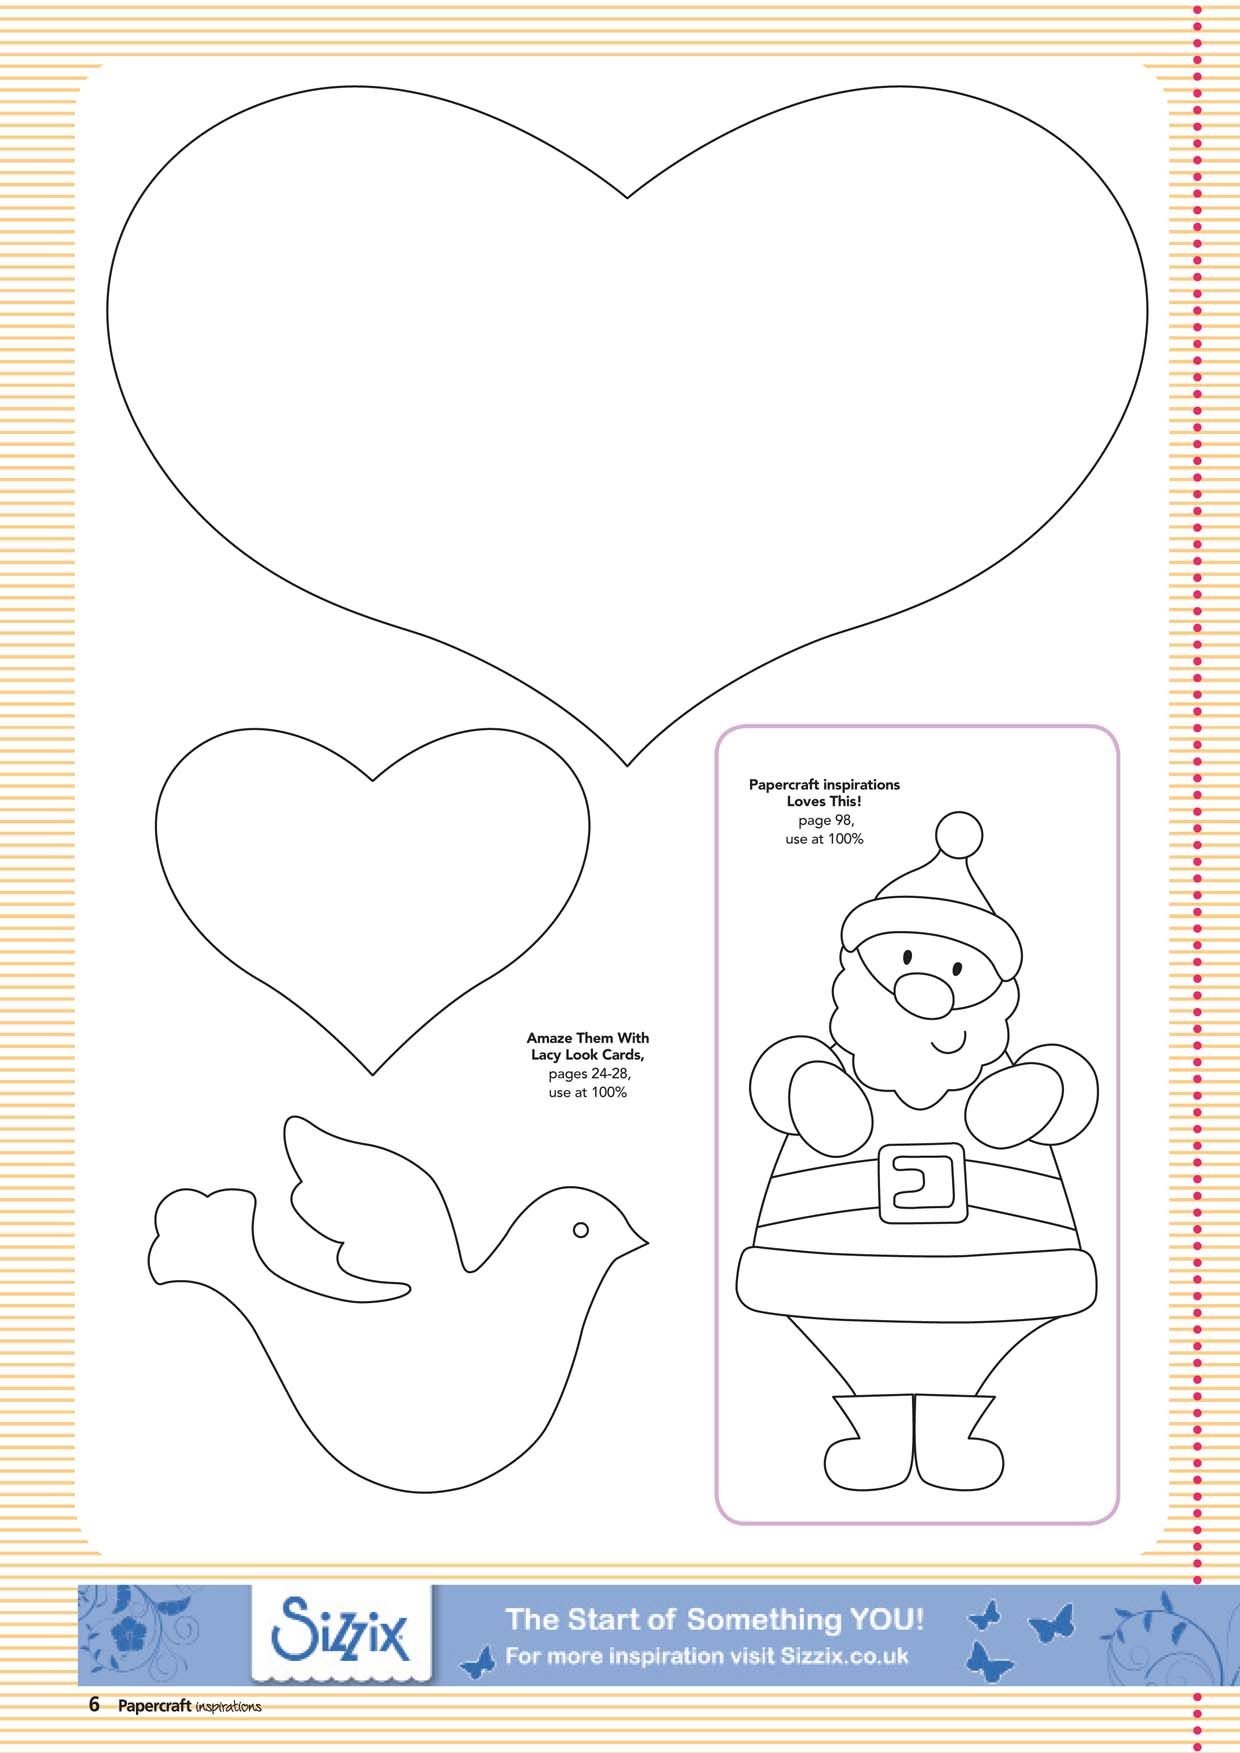 The Santa Would Be Cute Printed On Cardstock Colored And Used As Ornament